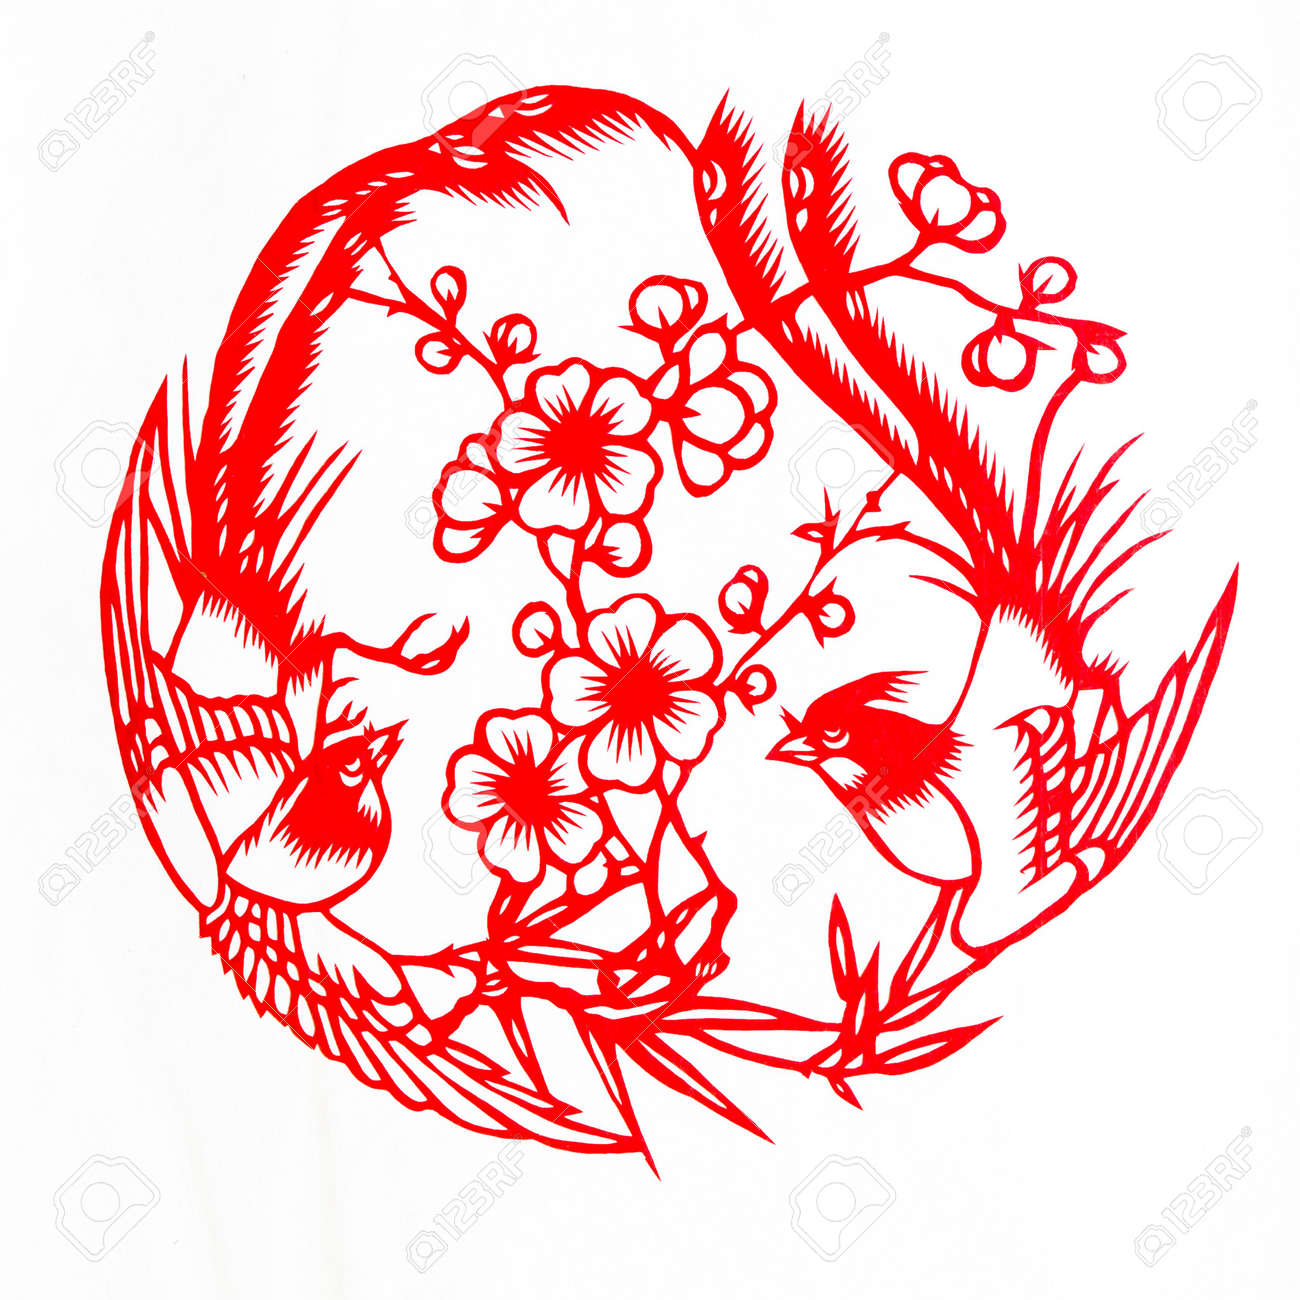 Fine spring day.This is a picture of Chinese paper cutting. paper-cut is one of the traditional Chinese arts and crafts. Stock Photo - 5798560